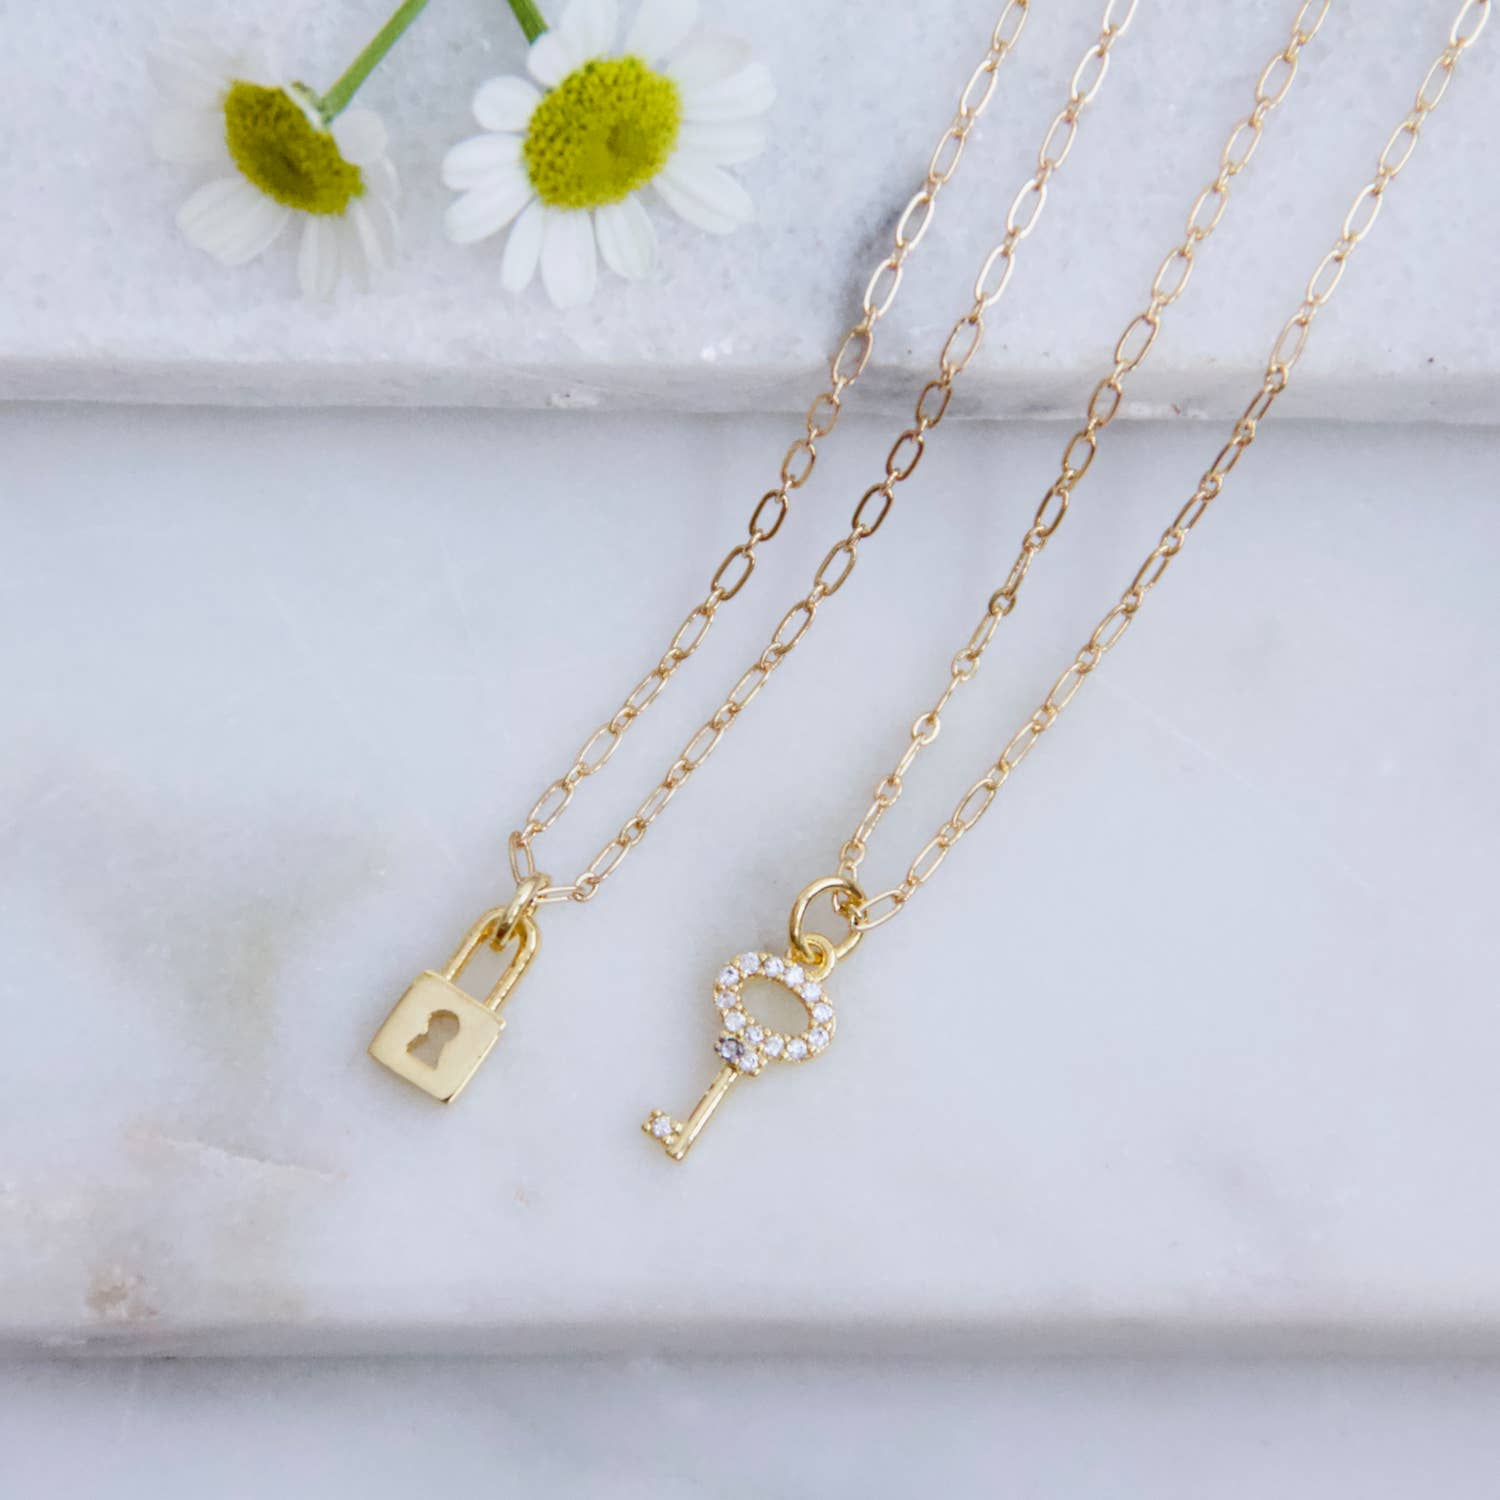 Lock + Key Friendship Necklace